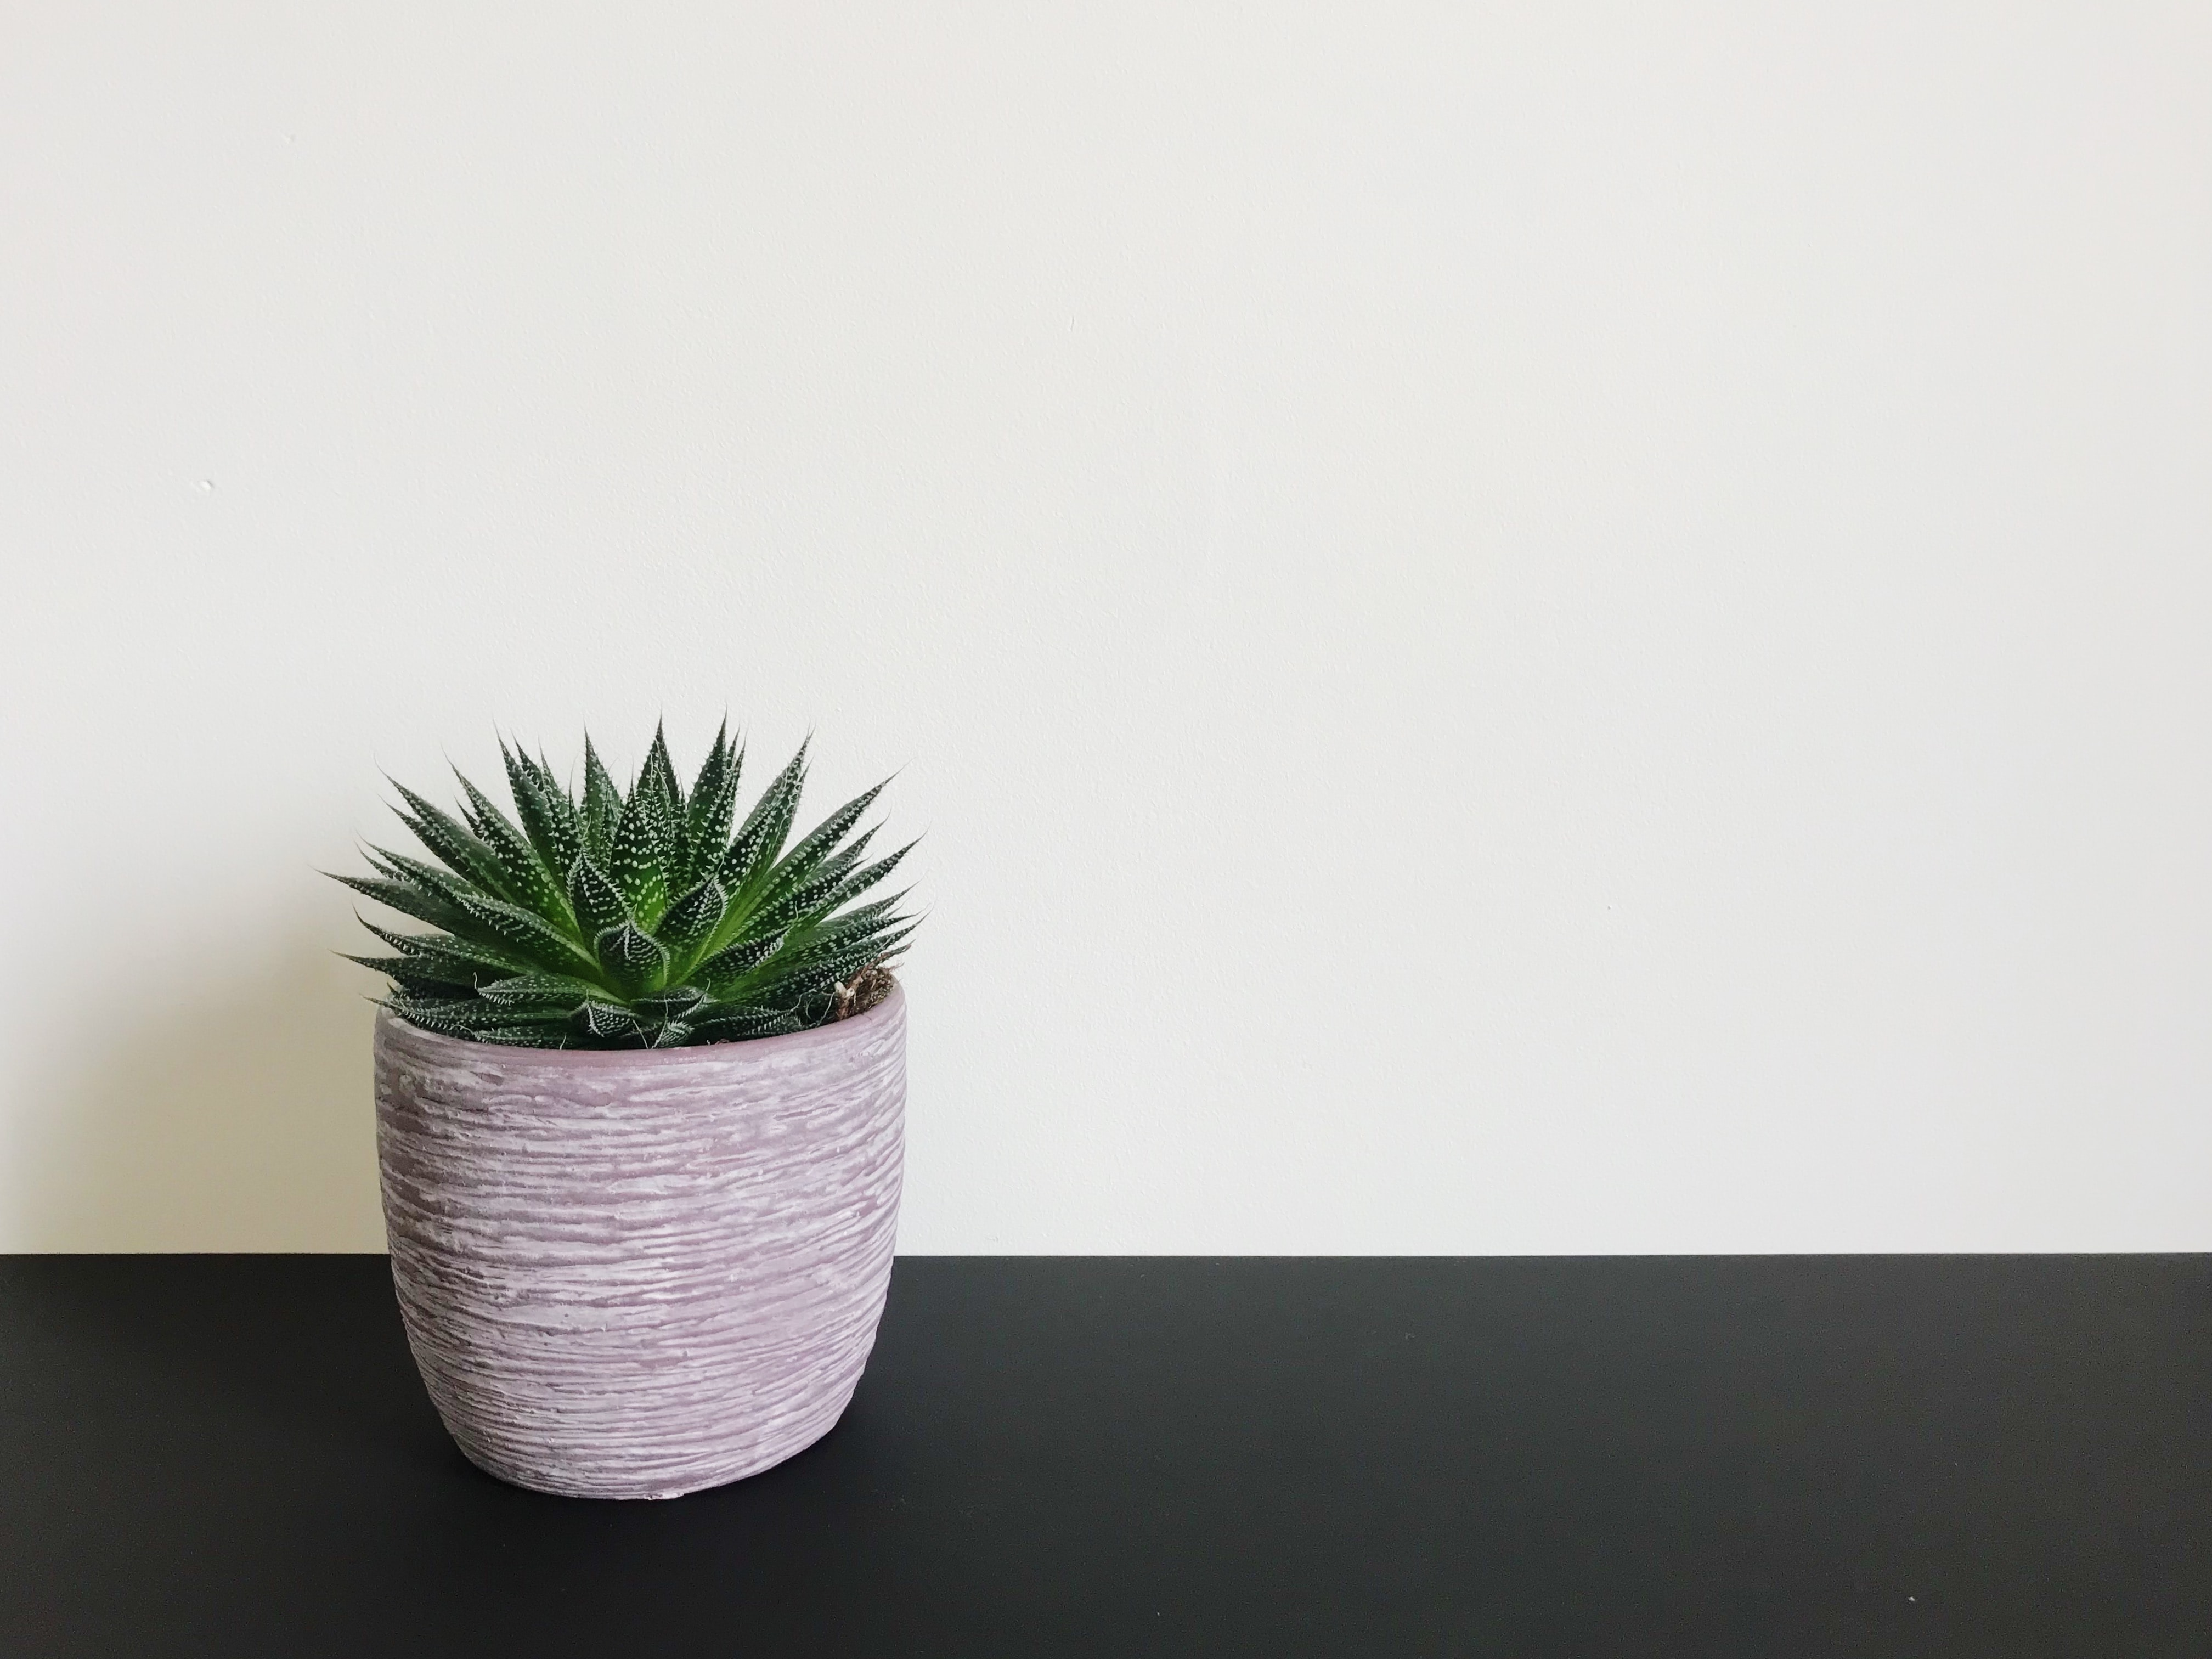 brown pot with green aloe vera by wall